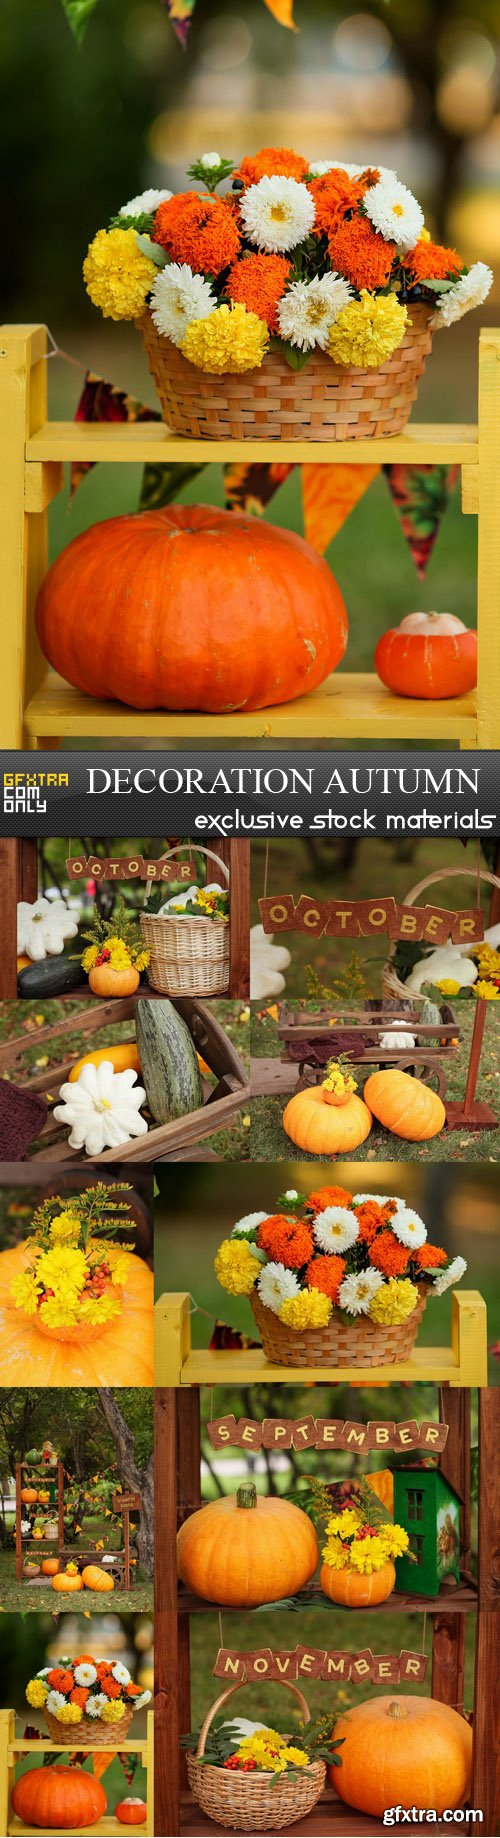 Decoration Autumn - 10 UHQ JPEG